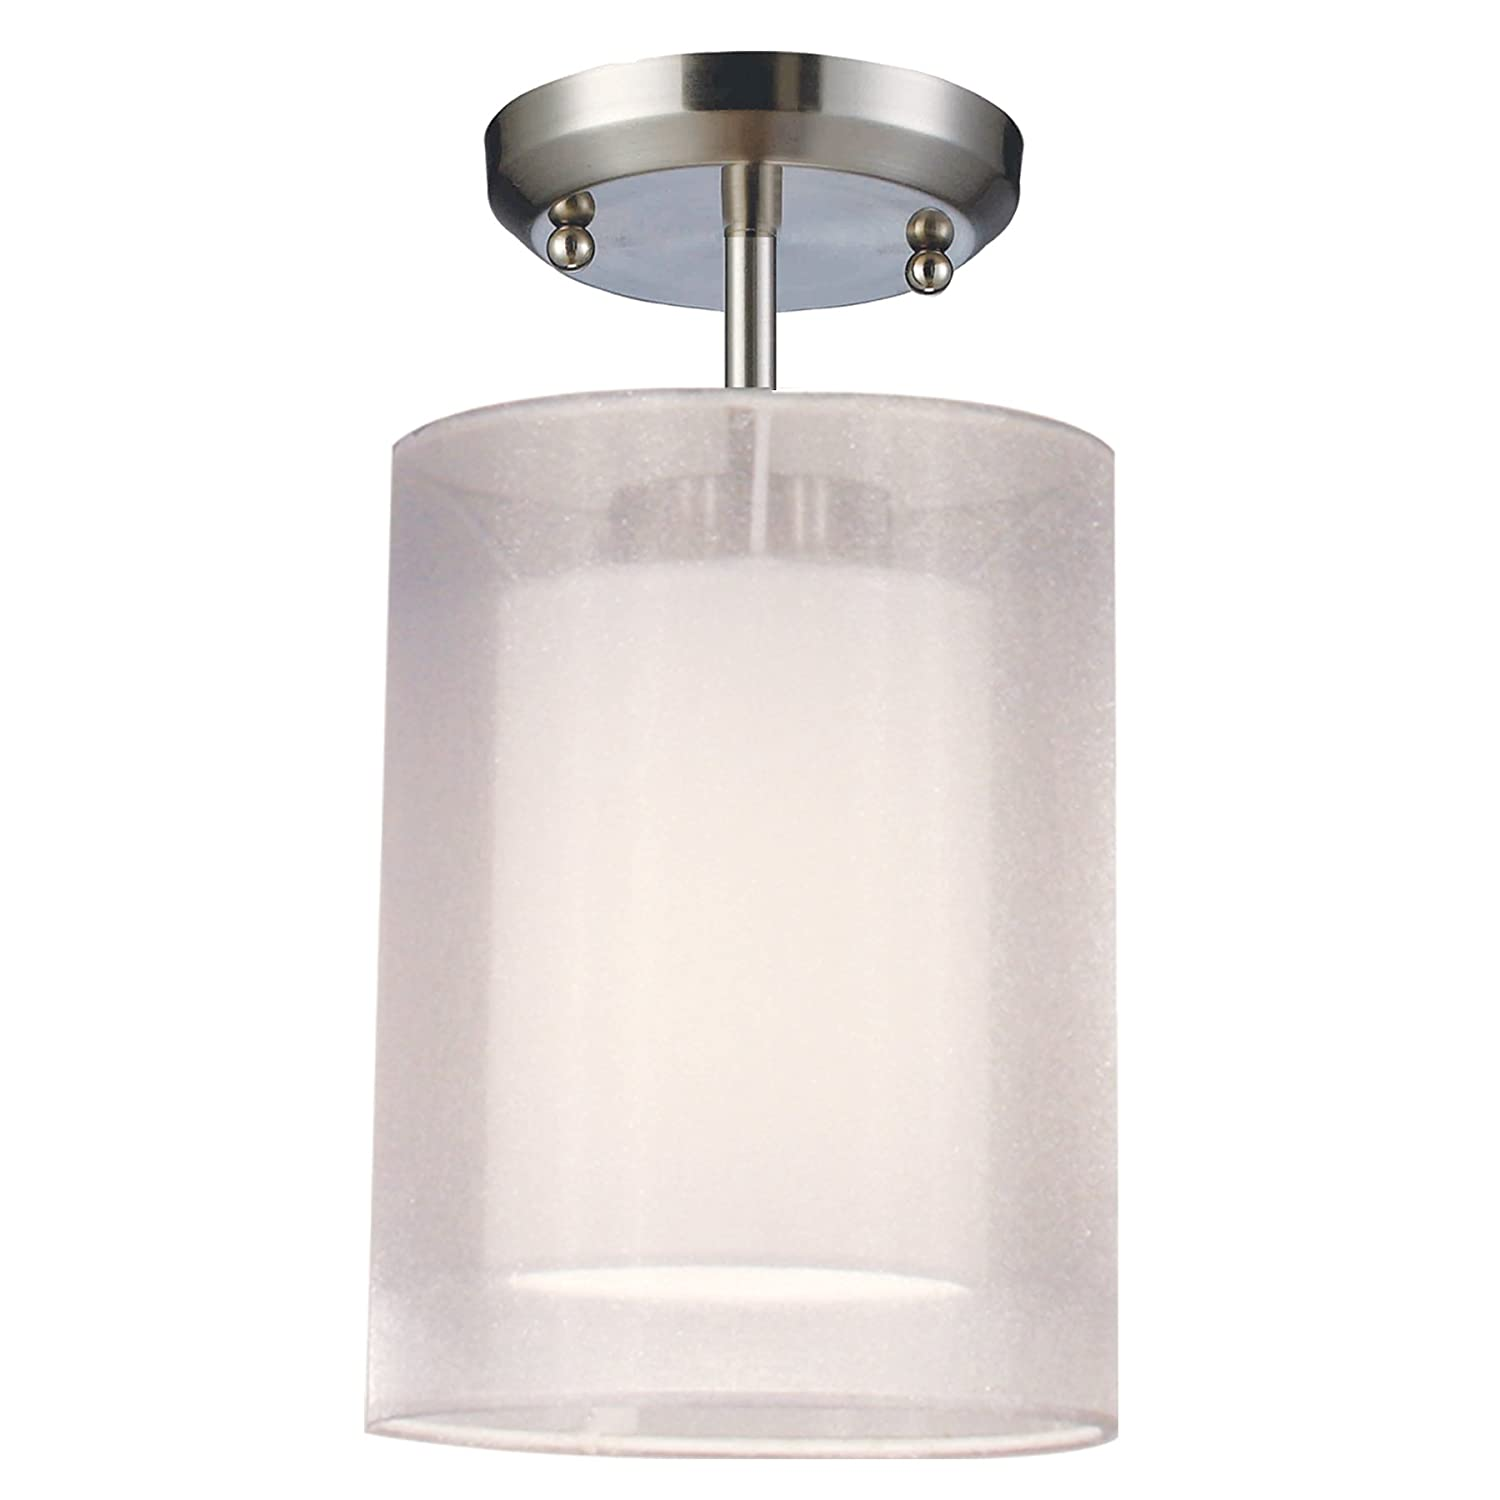 Z Lite 144 6w Sf Nikko One Light Semi Flush Mount Metal Frame Brushed Nickel Finish And White Shade Of Organza Material Find Best Cheap Hoangnam20082